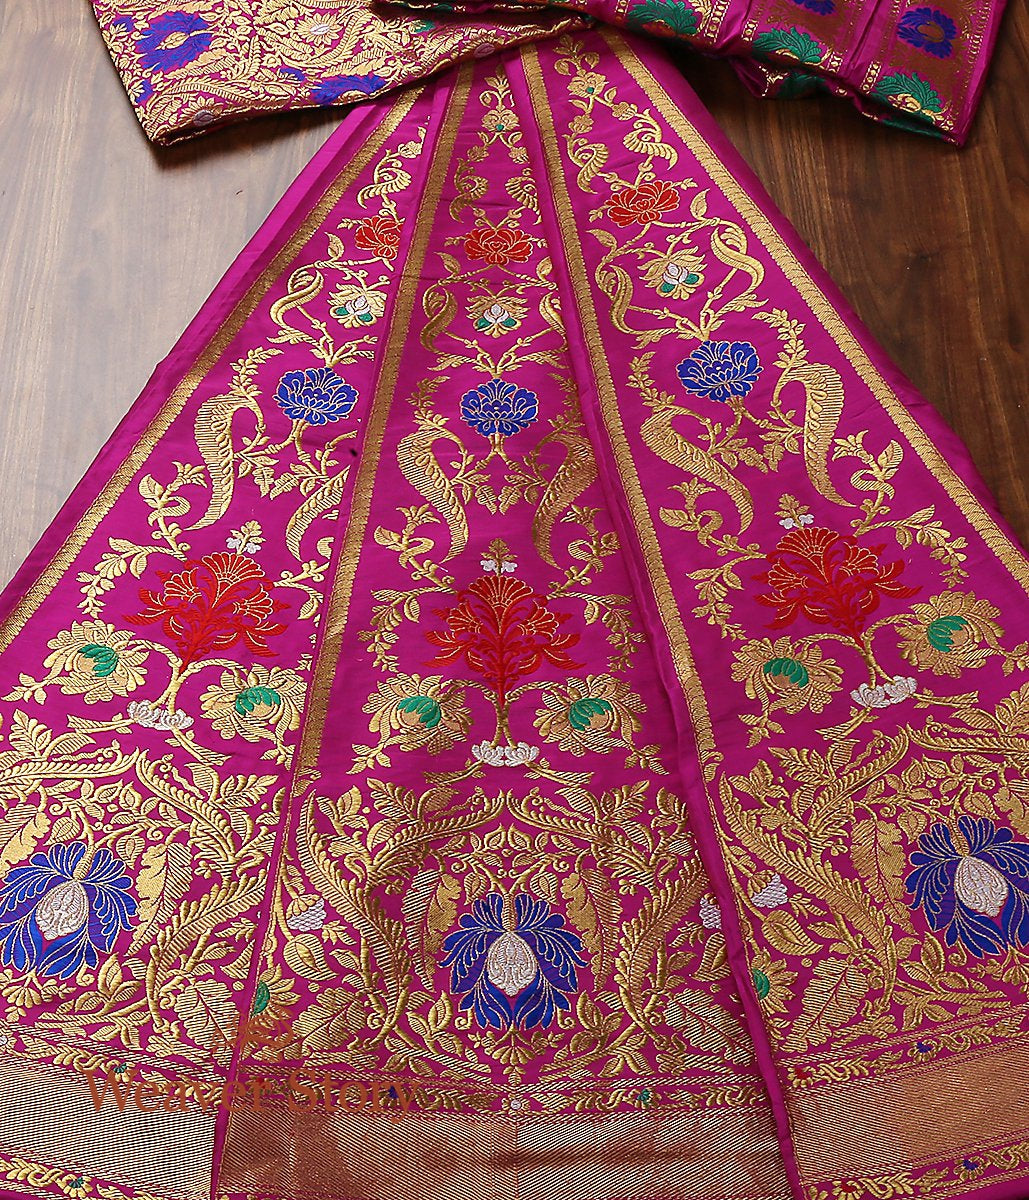 Handwoven Kadhwa Banarasi Lehenga in Purple with Meenakari